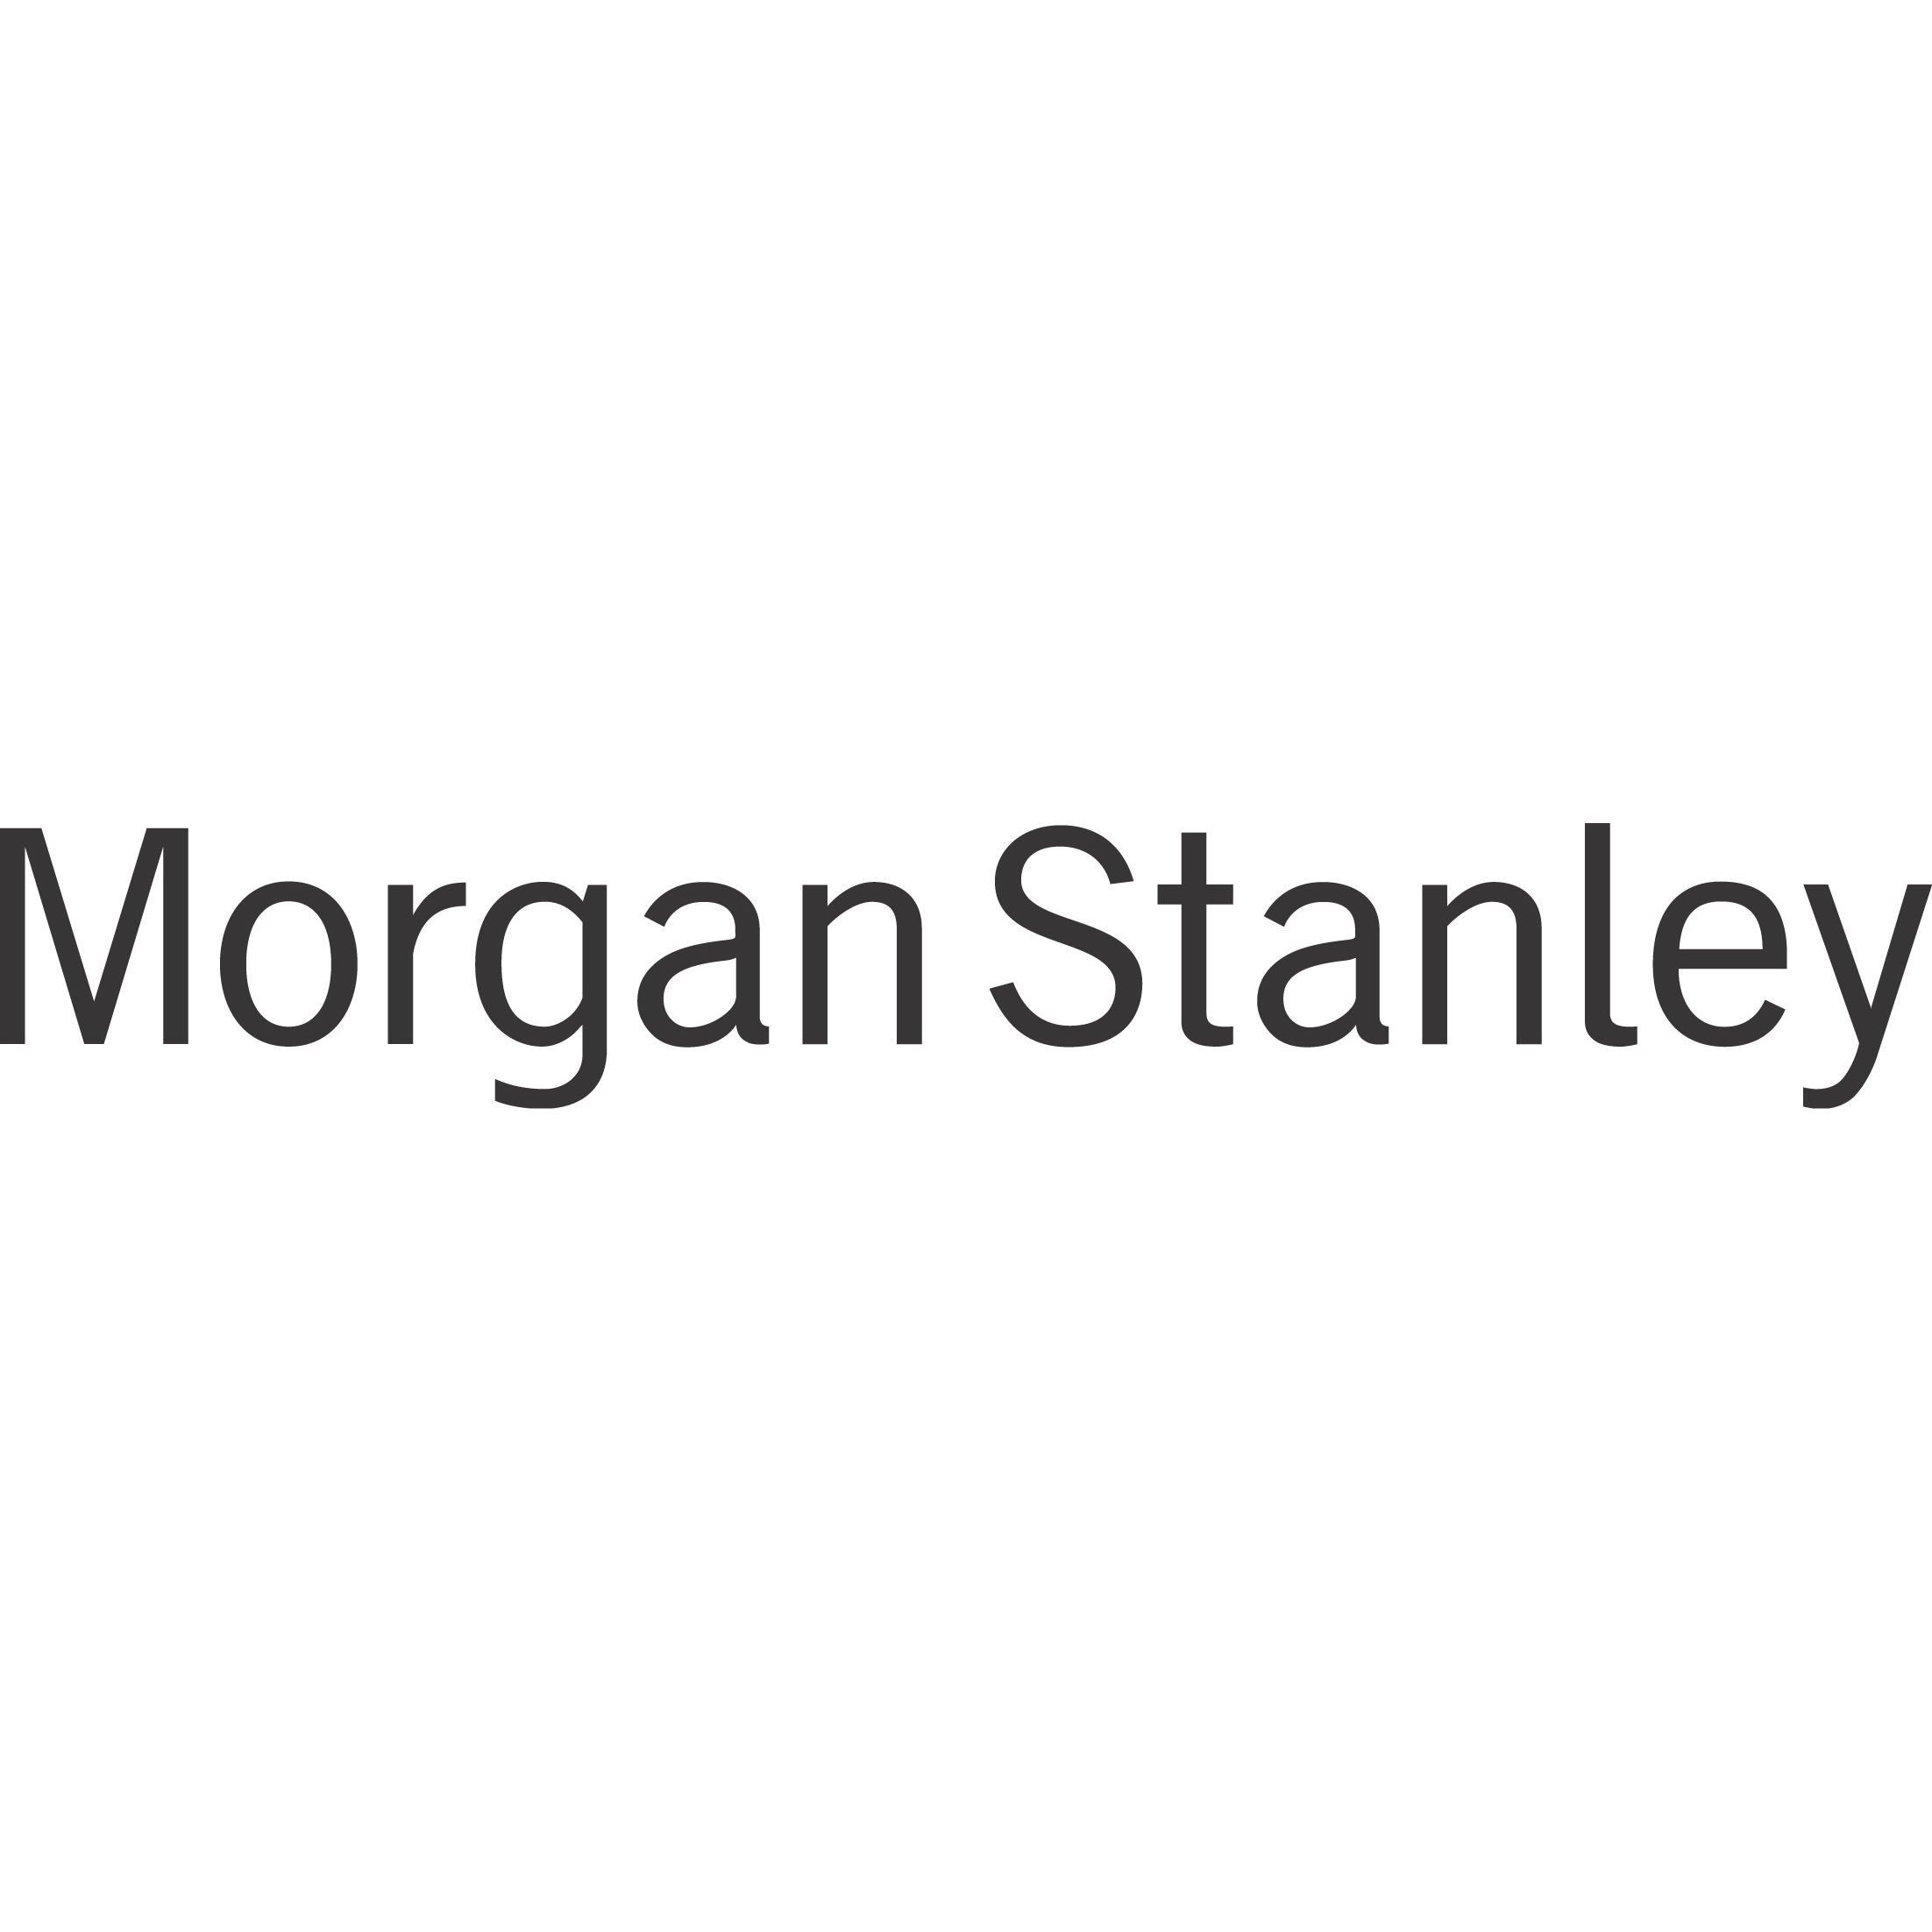 Shaun B Freeman - Morgan Stanley | Financial Advisor in Florham Park,New Jersey